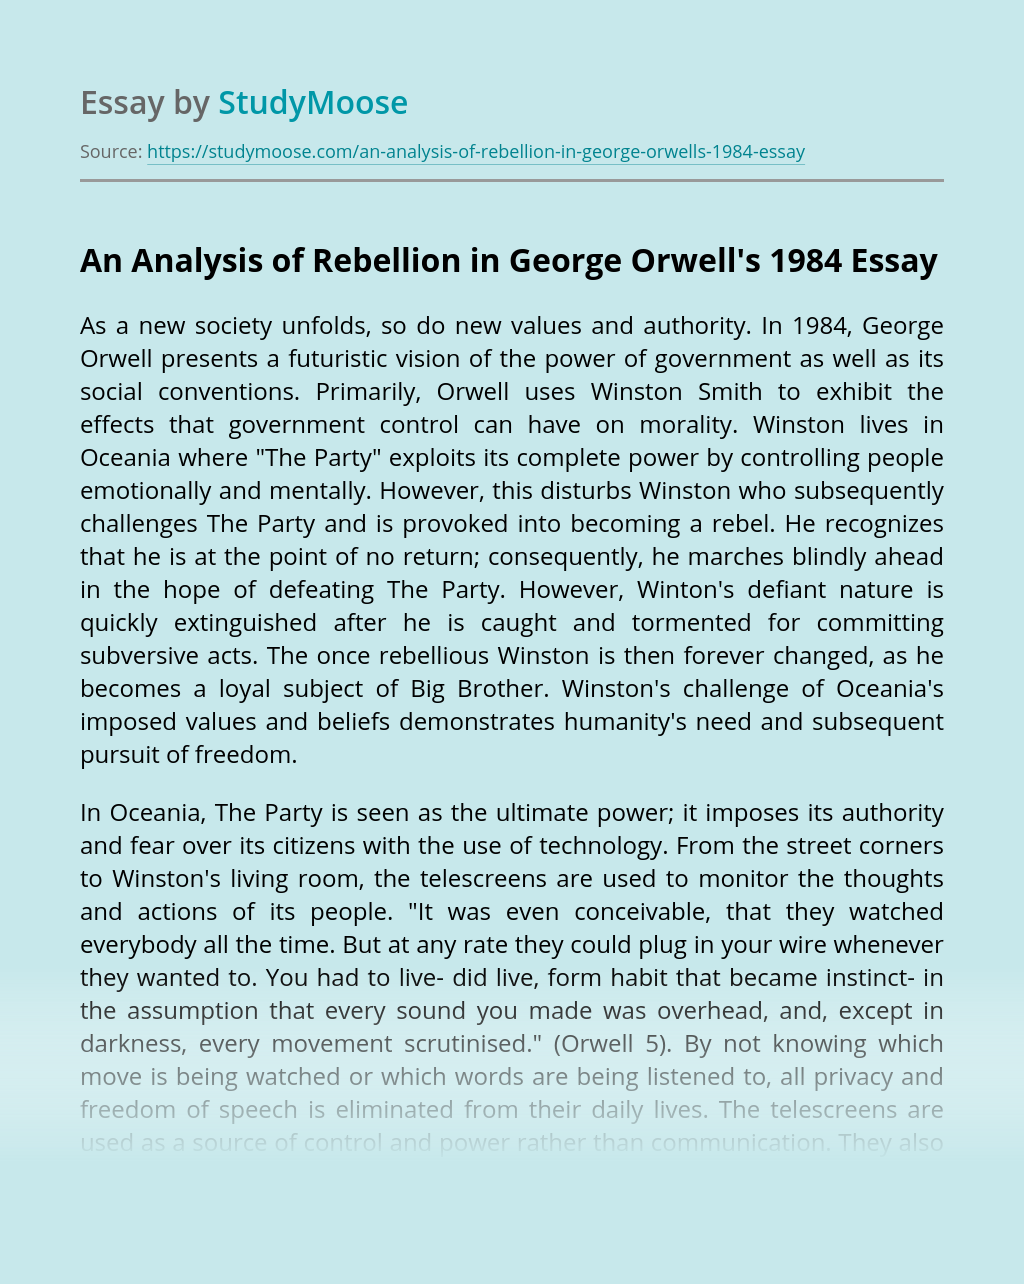 An Analysis of Rebellion in George Orwell's 1984